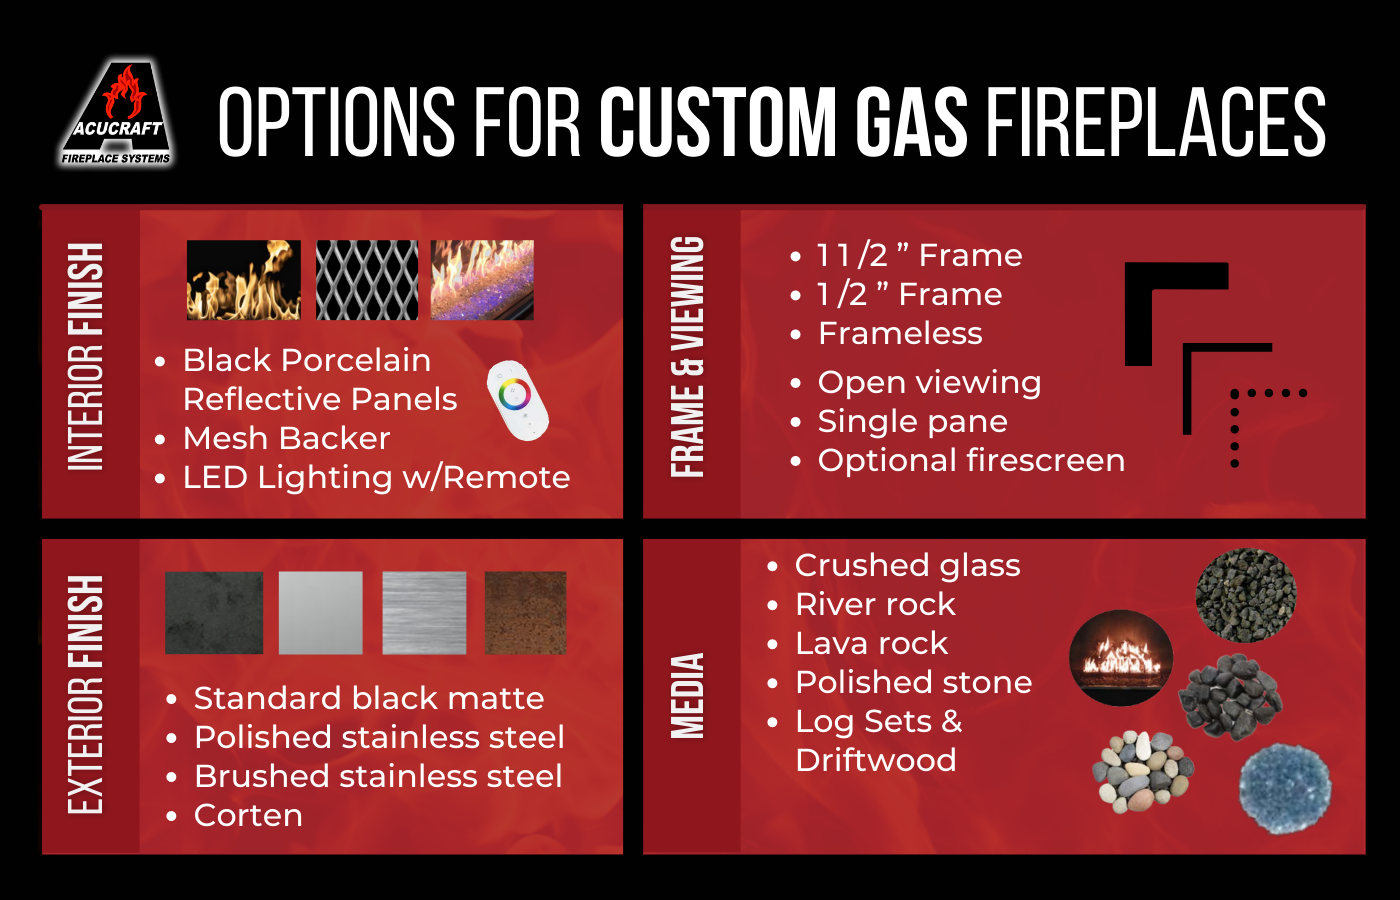 Infographic representing custom gas fireplace options